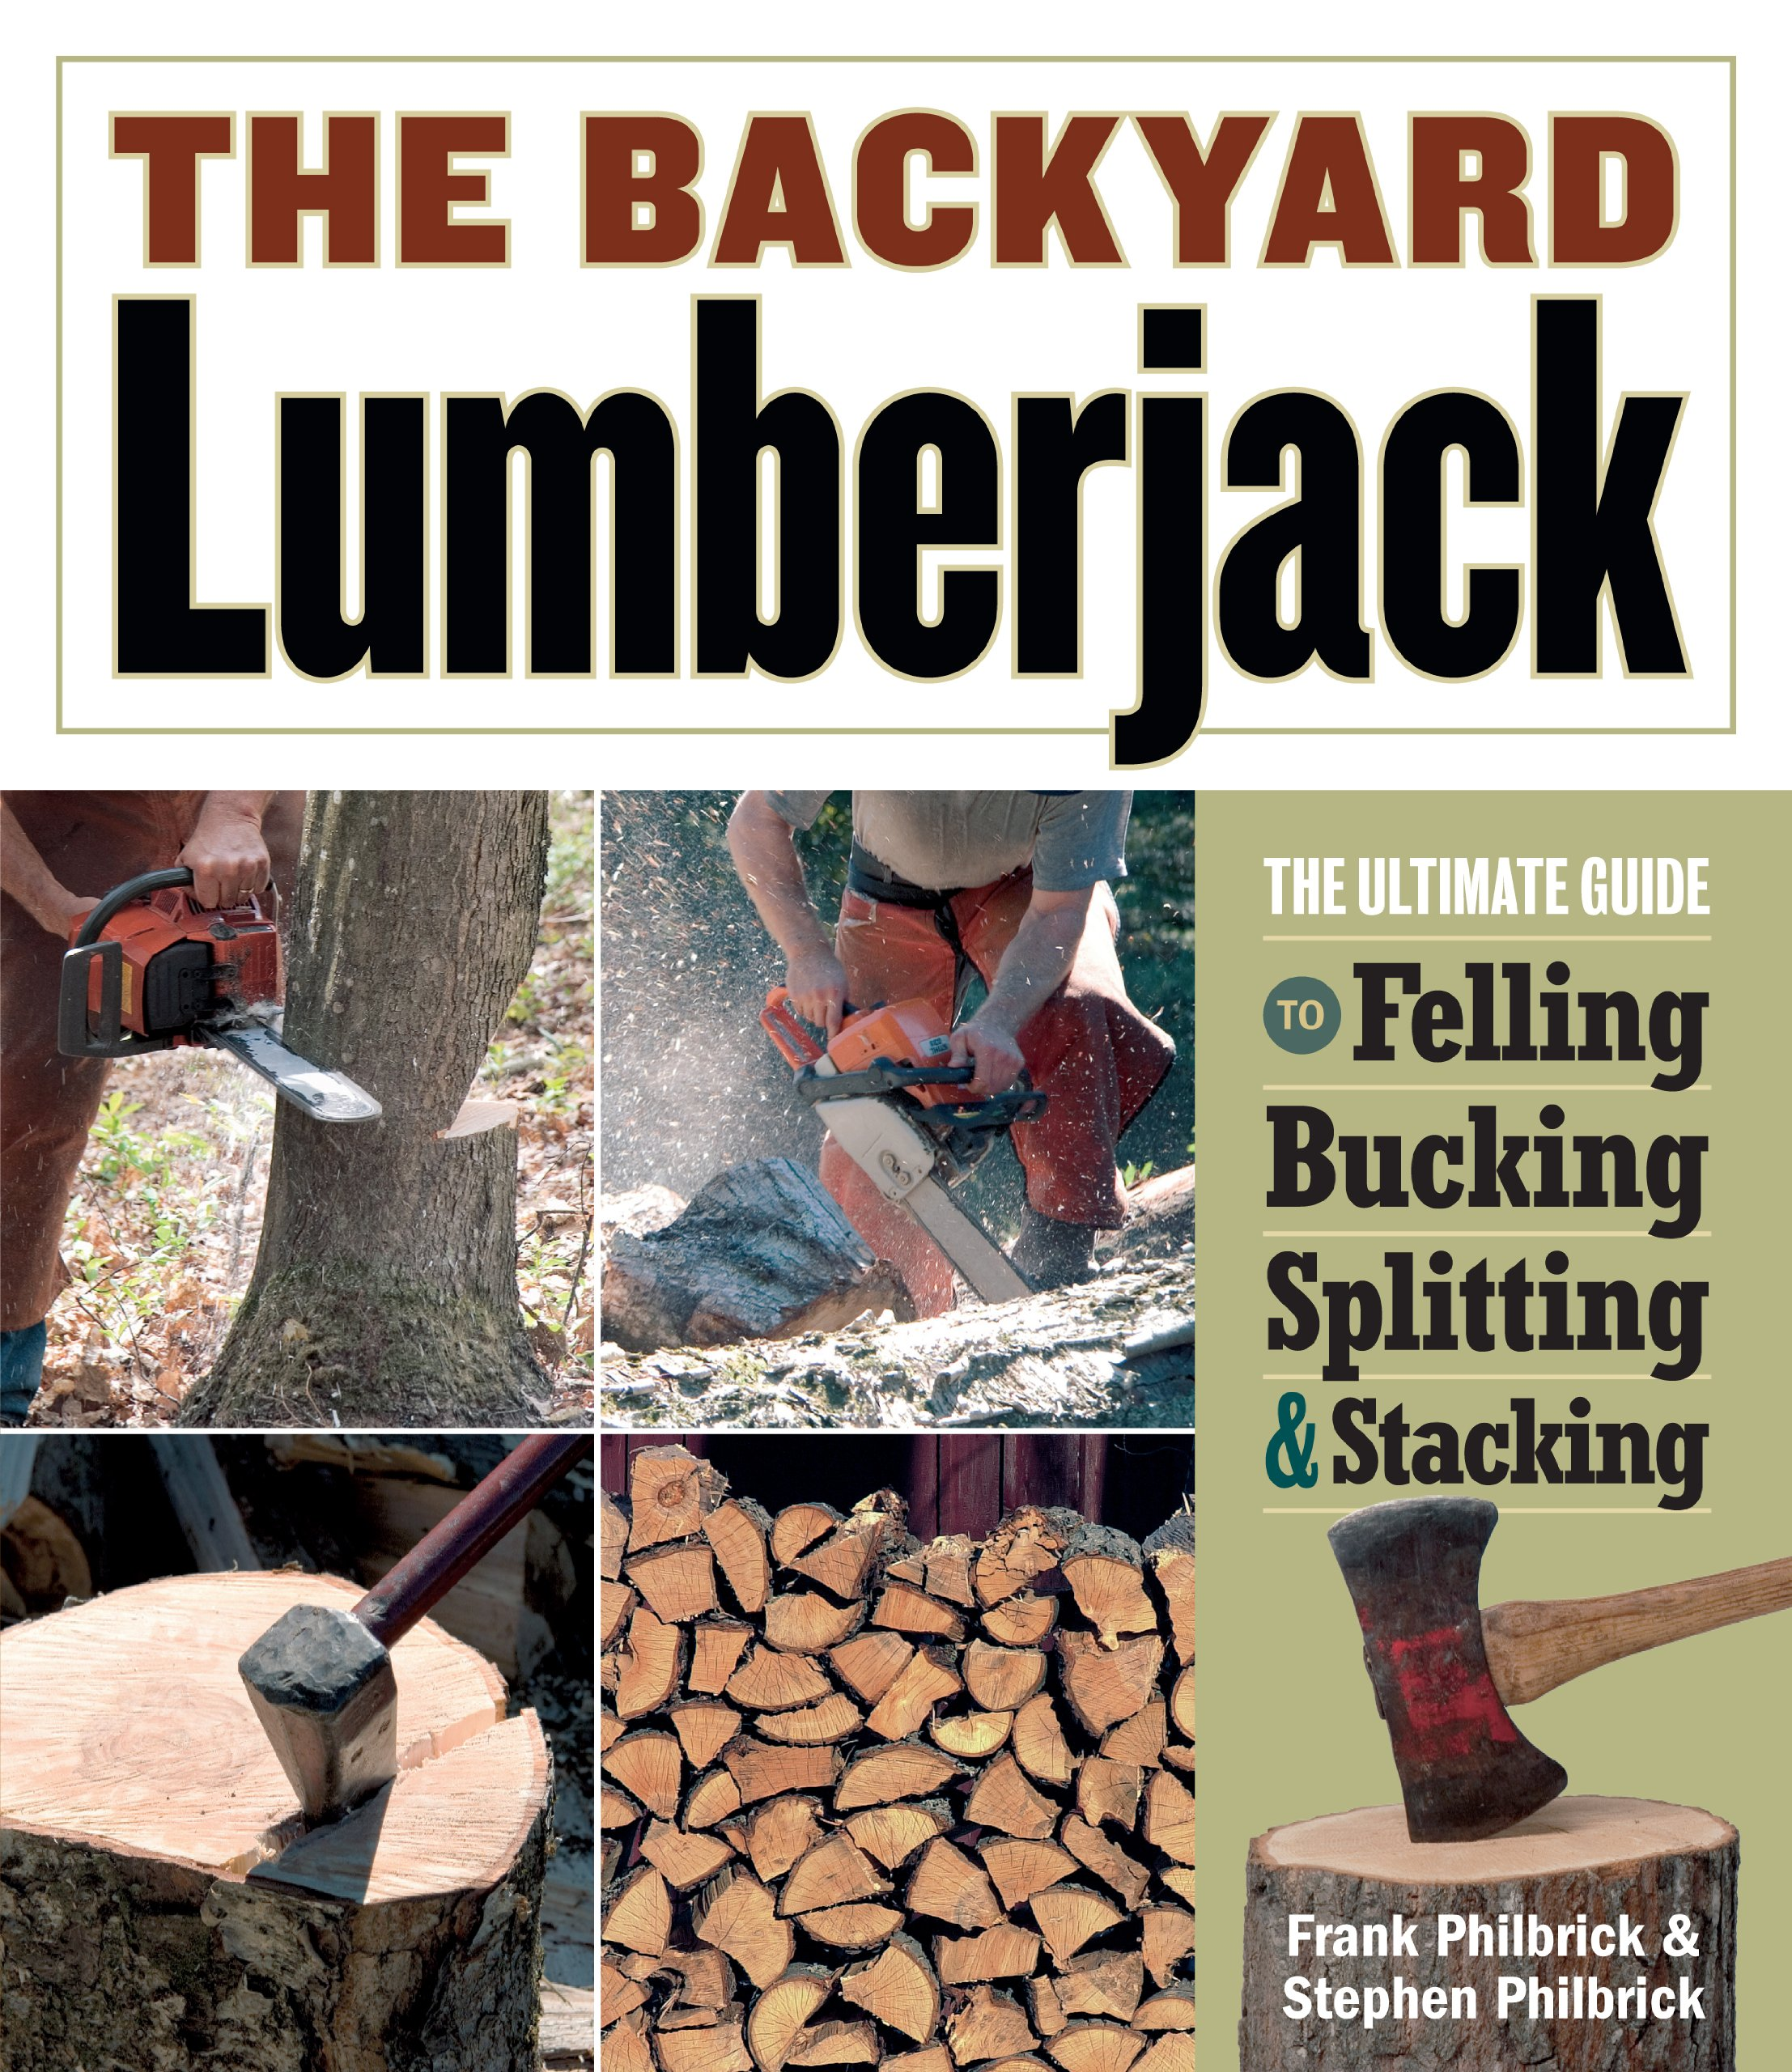 the backyard lumberjack frank philbrick stephen philbrick